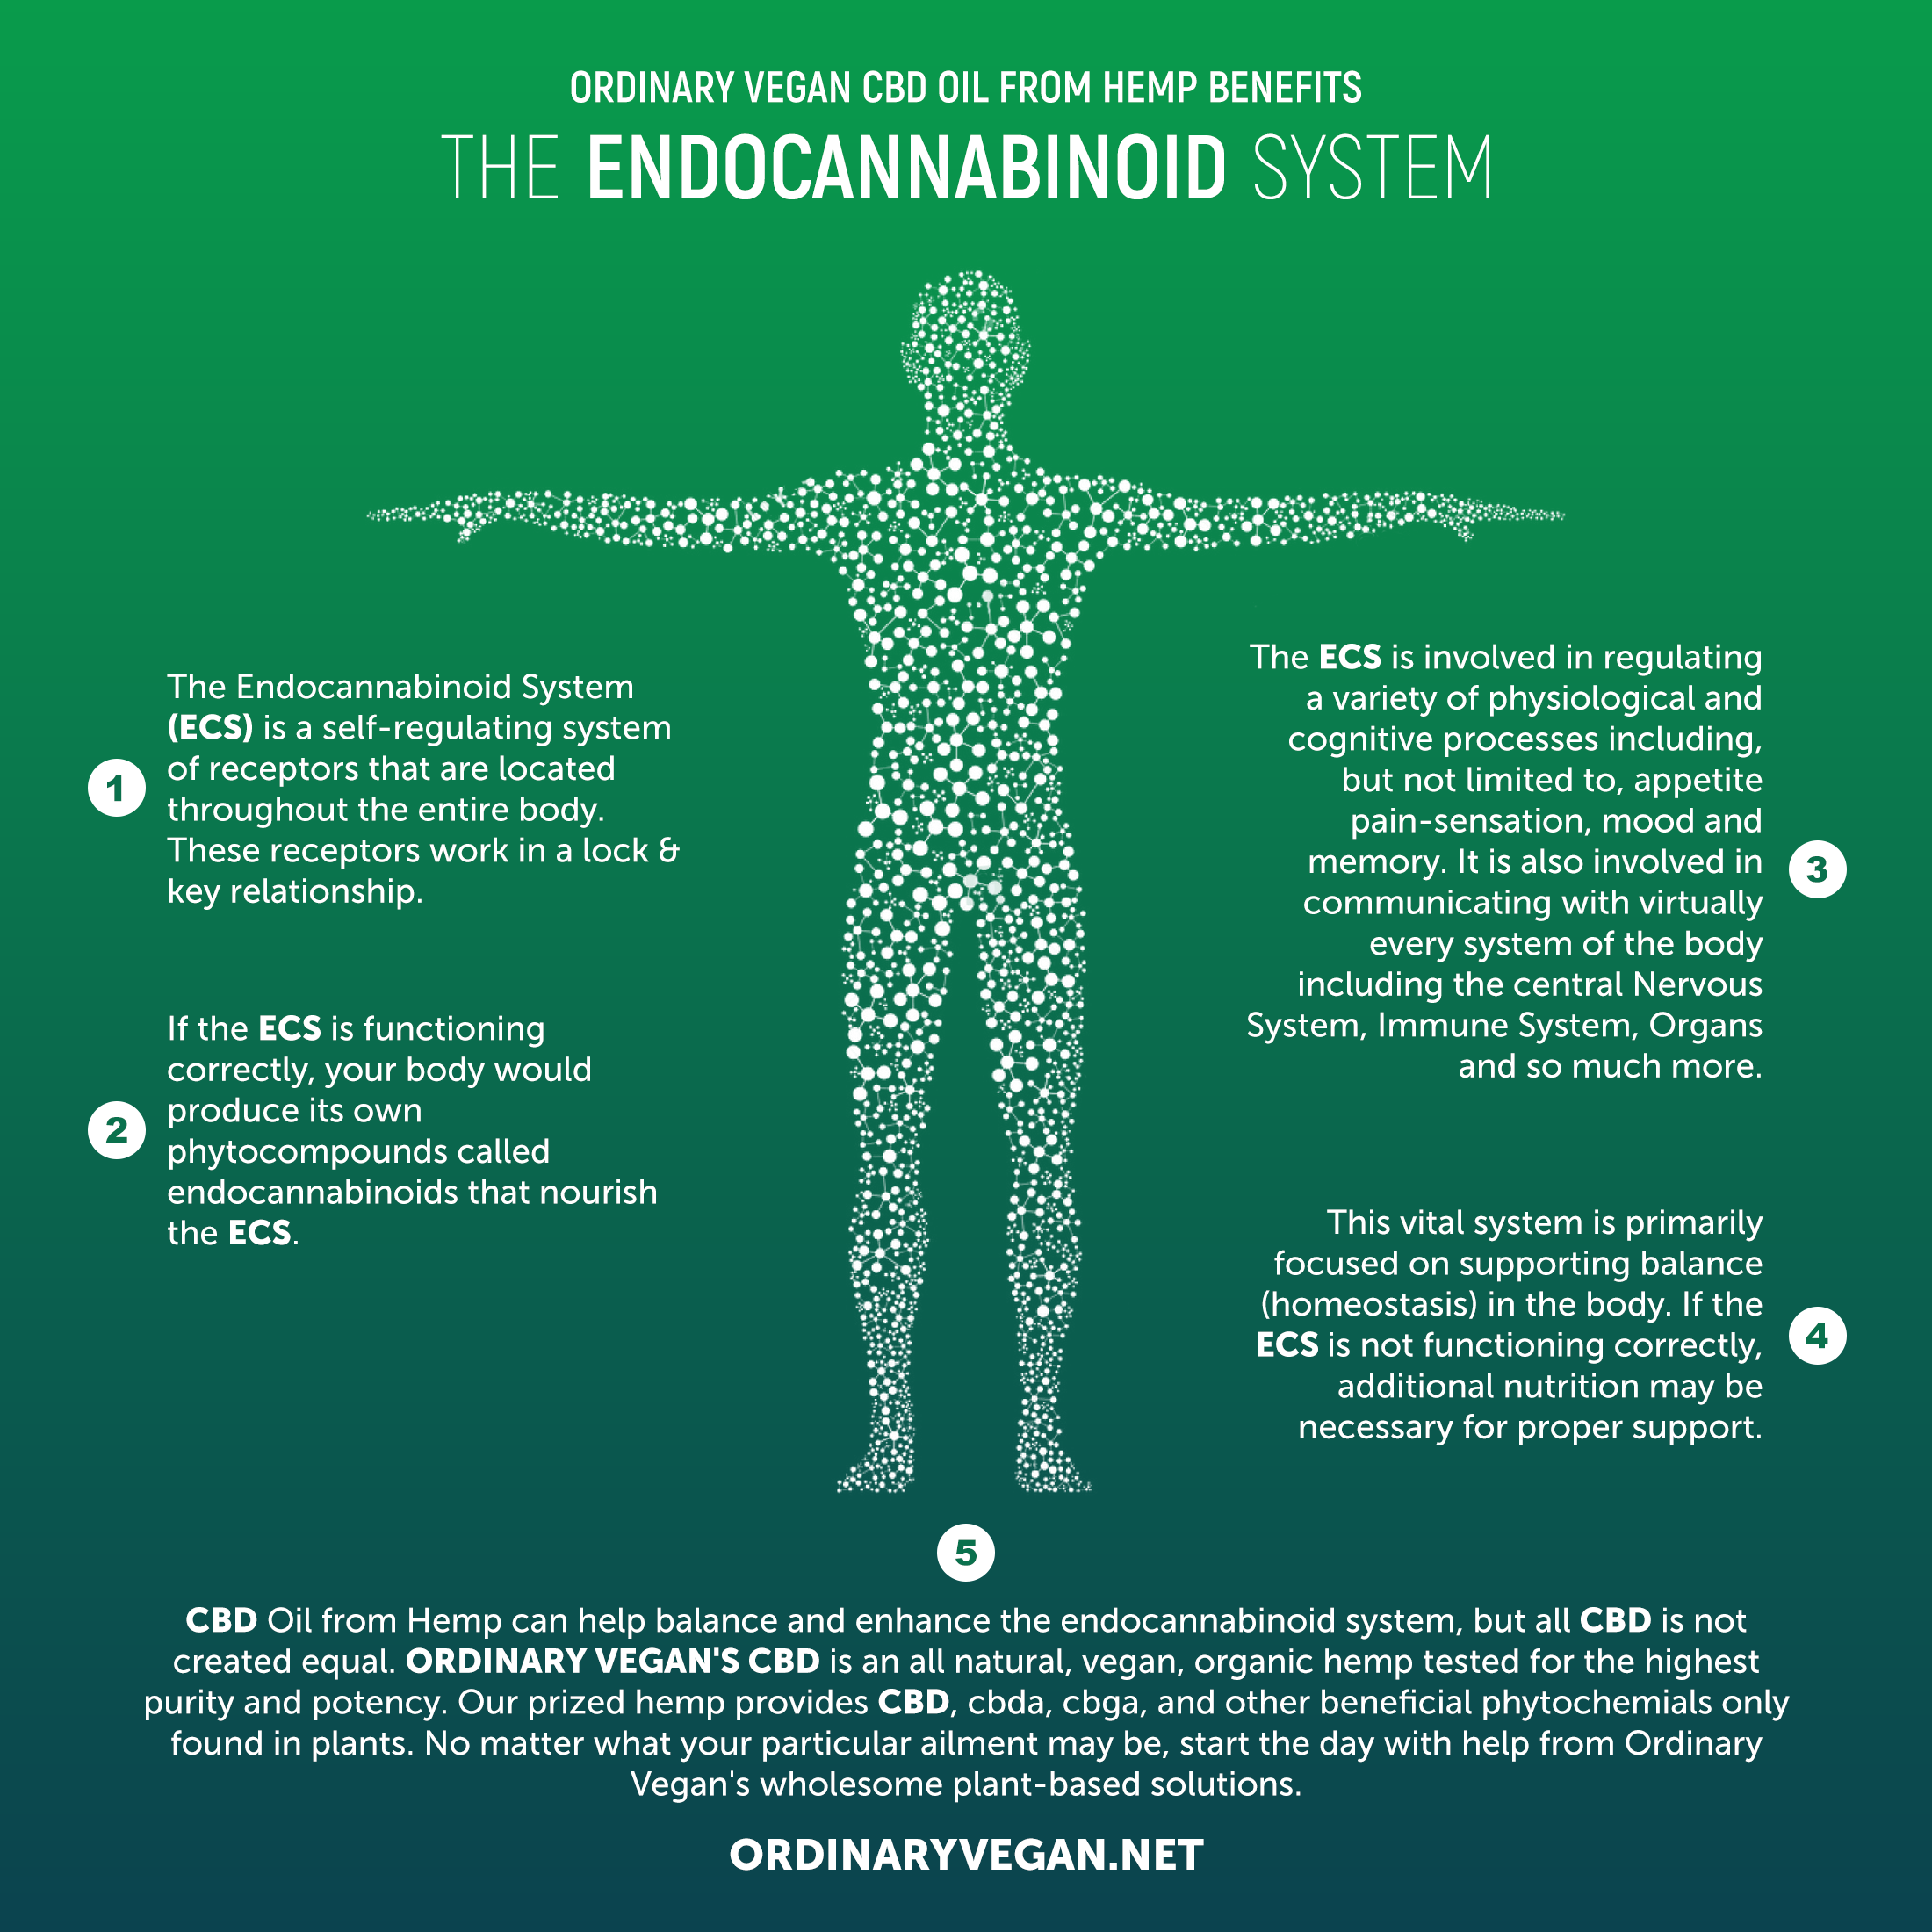 Pure CBD Oil To Benefit The Endocannabiniod System